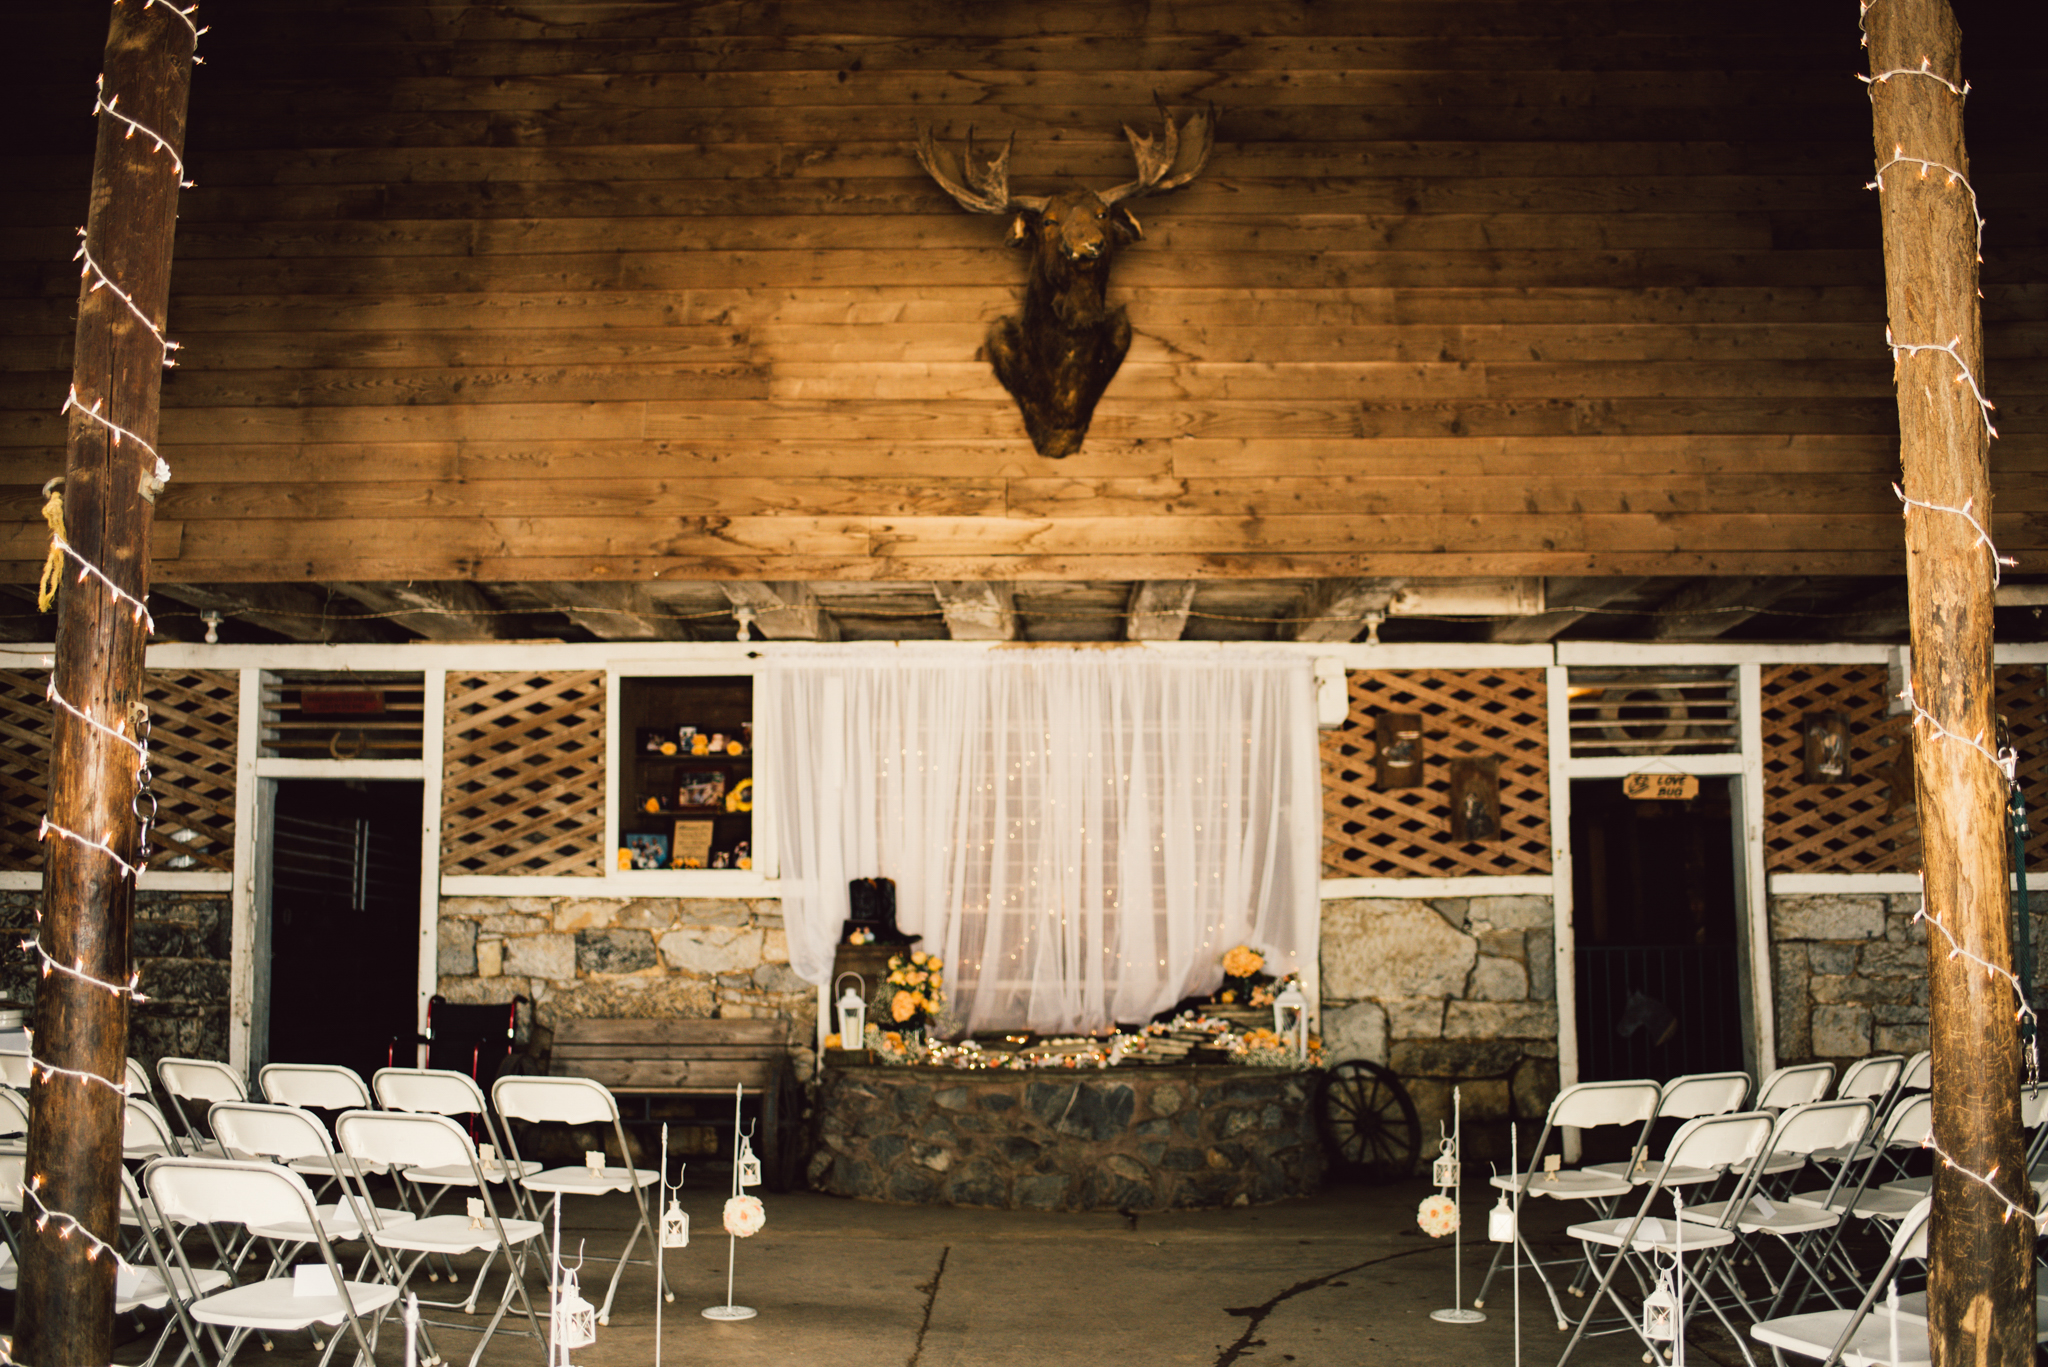 Martinsville West Virginia Horse Barn Rustic Wedding White Sails Creative Photography_23.JPG